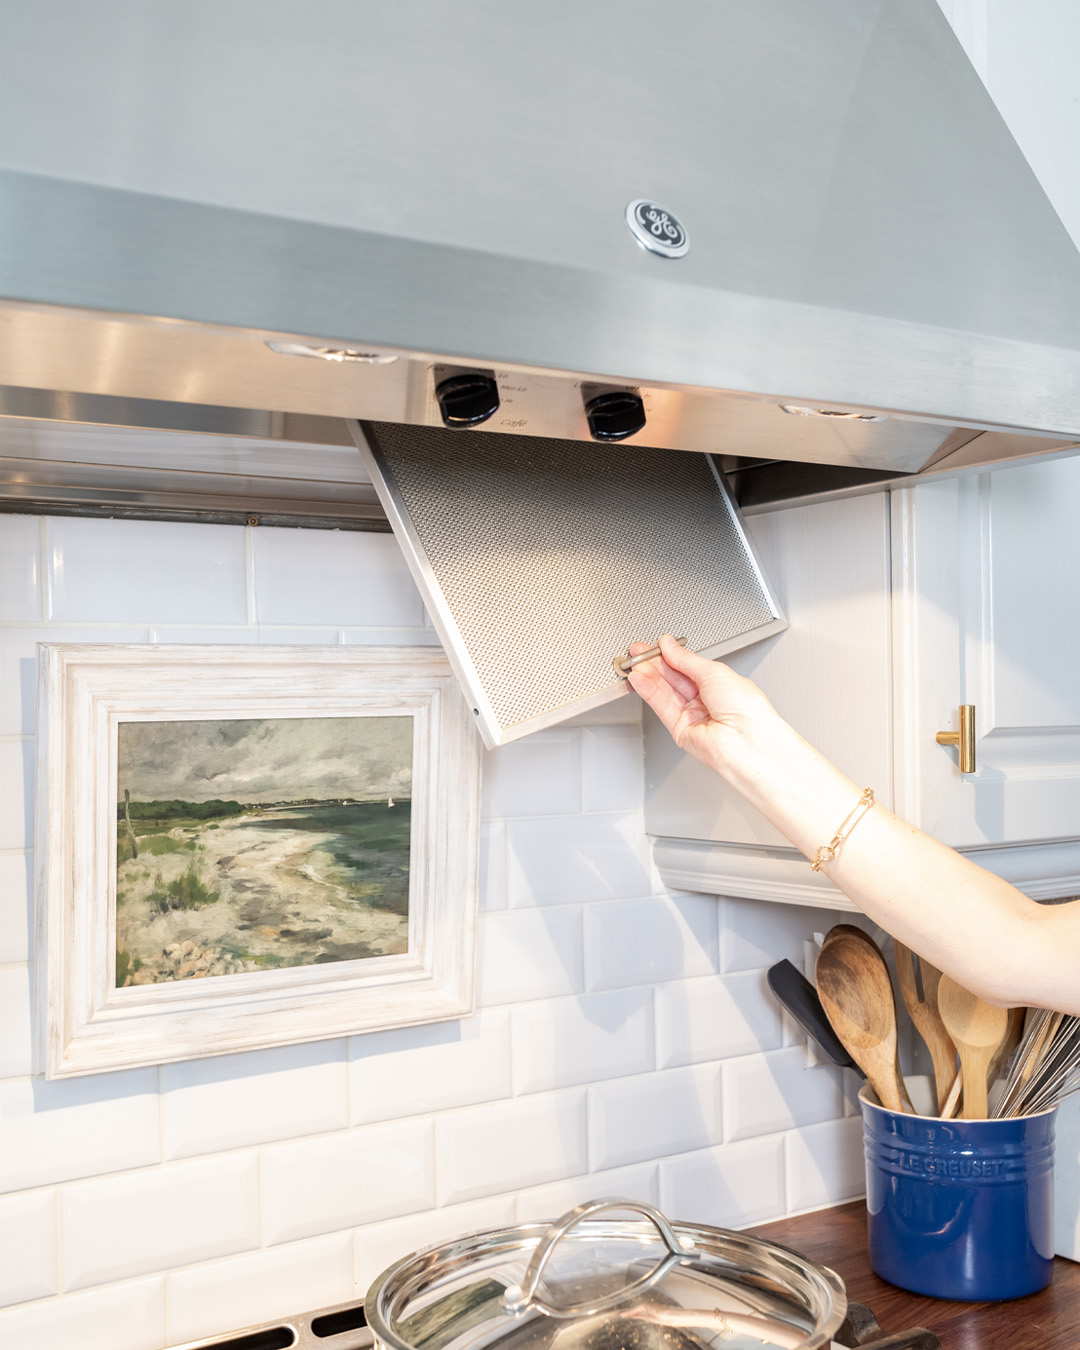 Did you know that you're supposed to clean the filters for the fan over your stove regularly? Did you know it's actually super fun? Here's how to clean range hood filters.